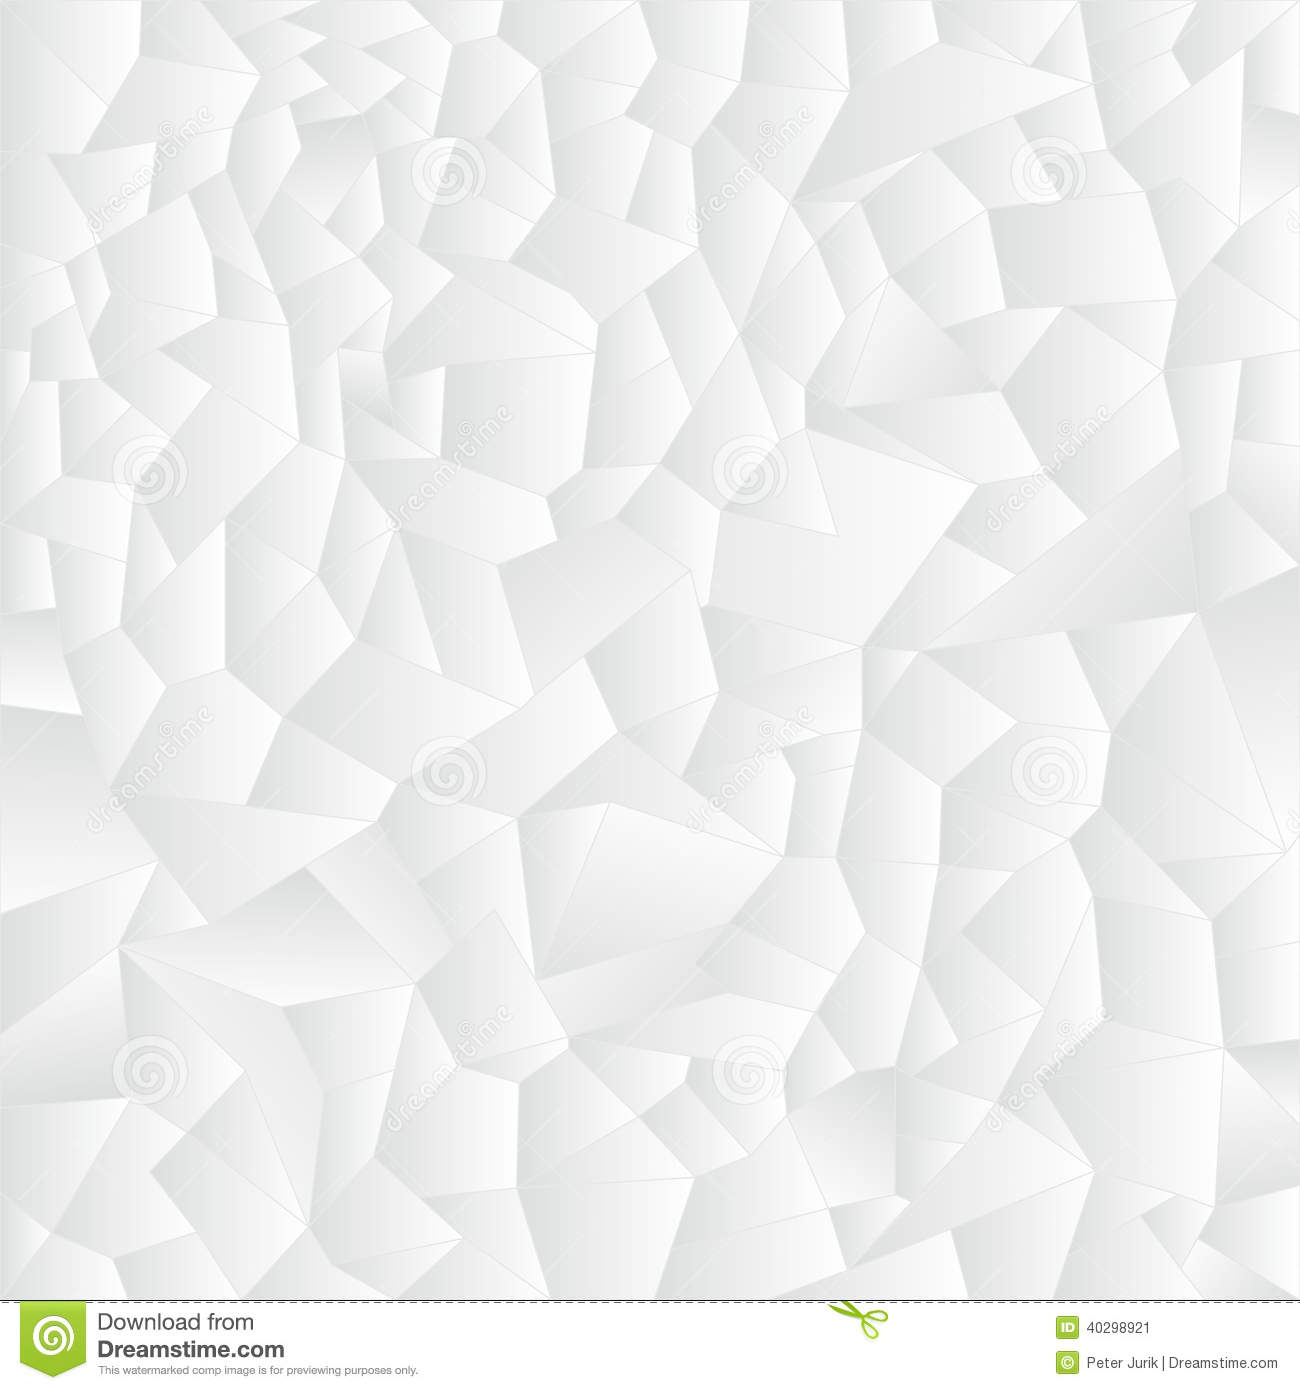 Texture of crumpled paper stock vector. Illustration of ...